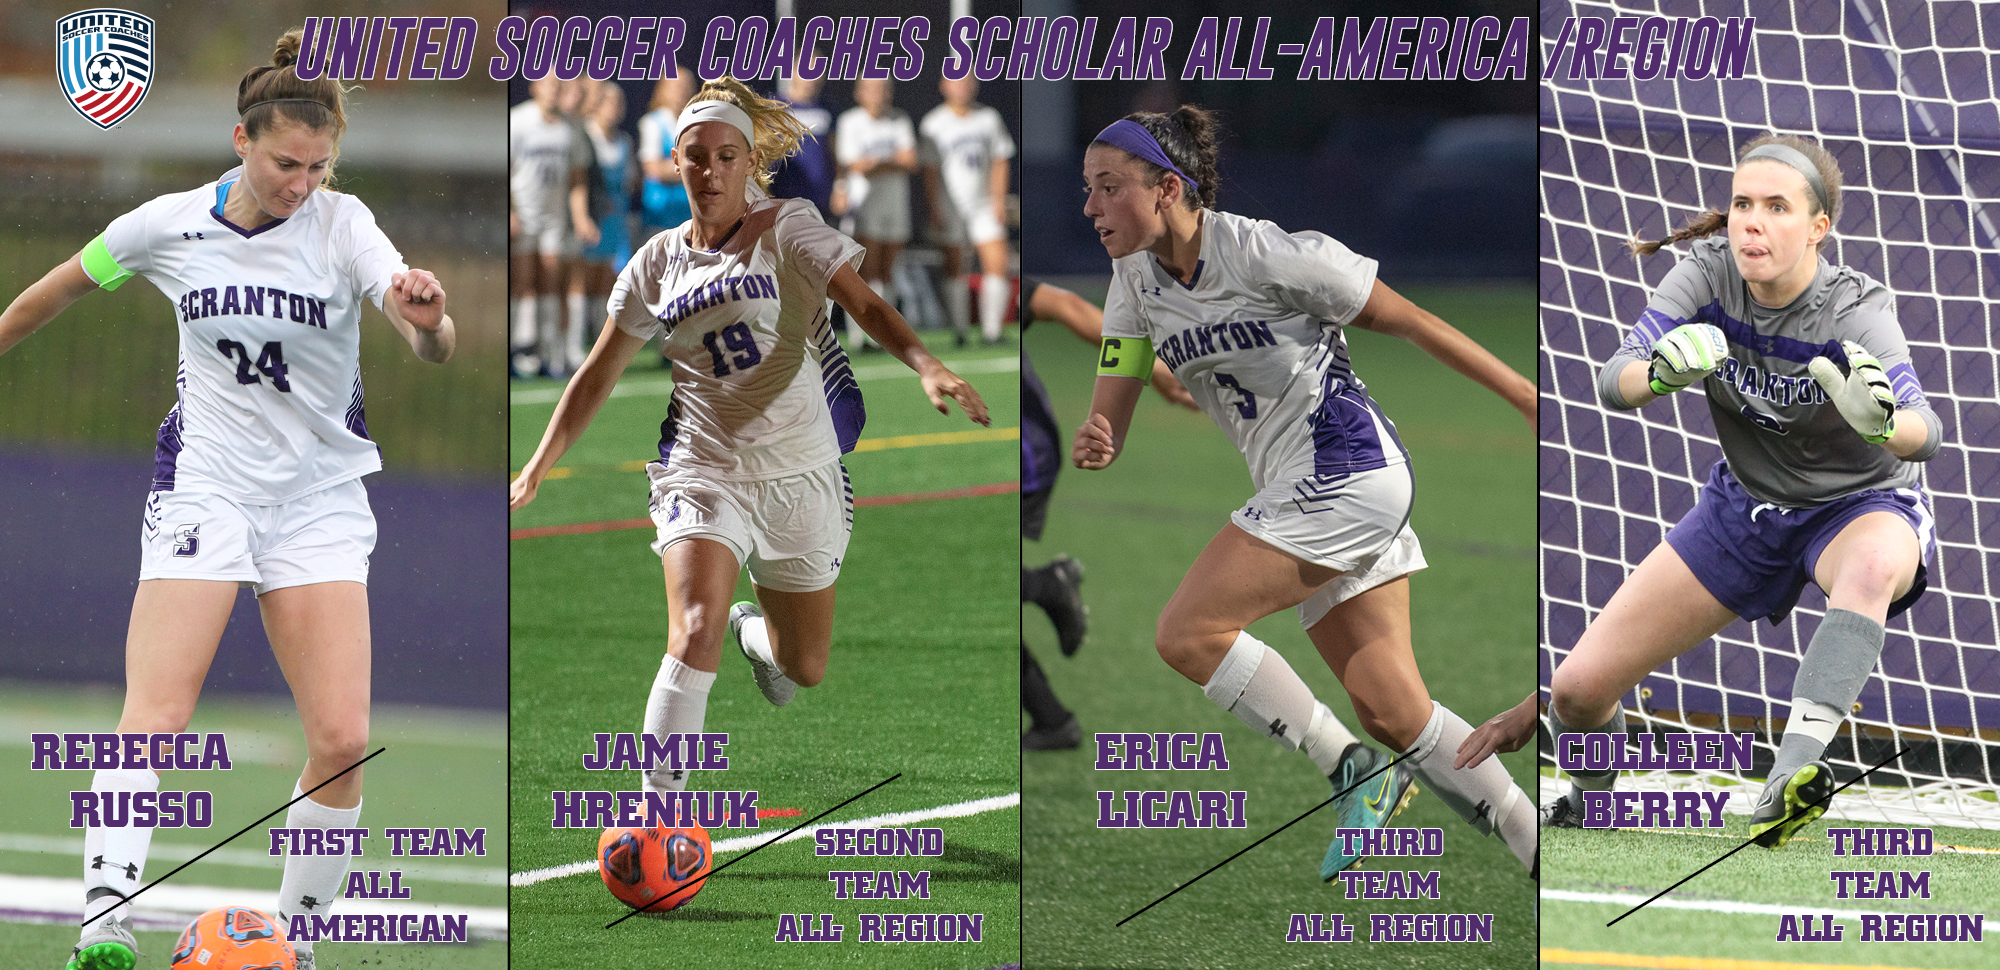 Russo Named United Soccer Coaches Scholar All-American; Four Named to Scholar All-Region Teams